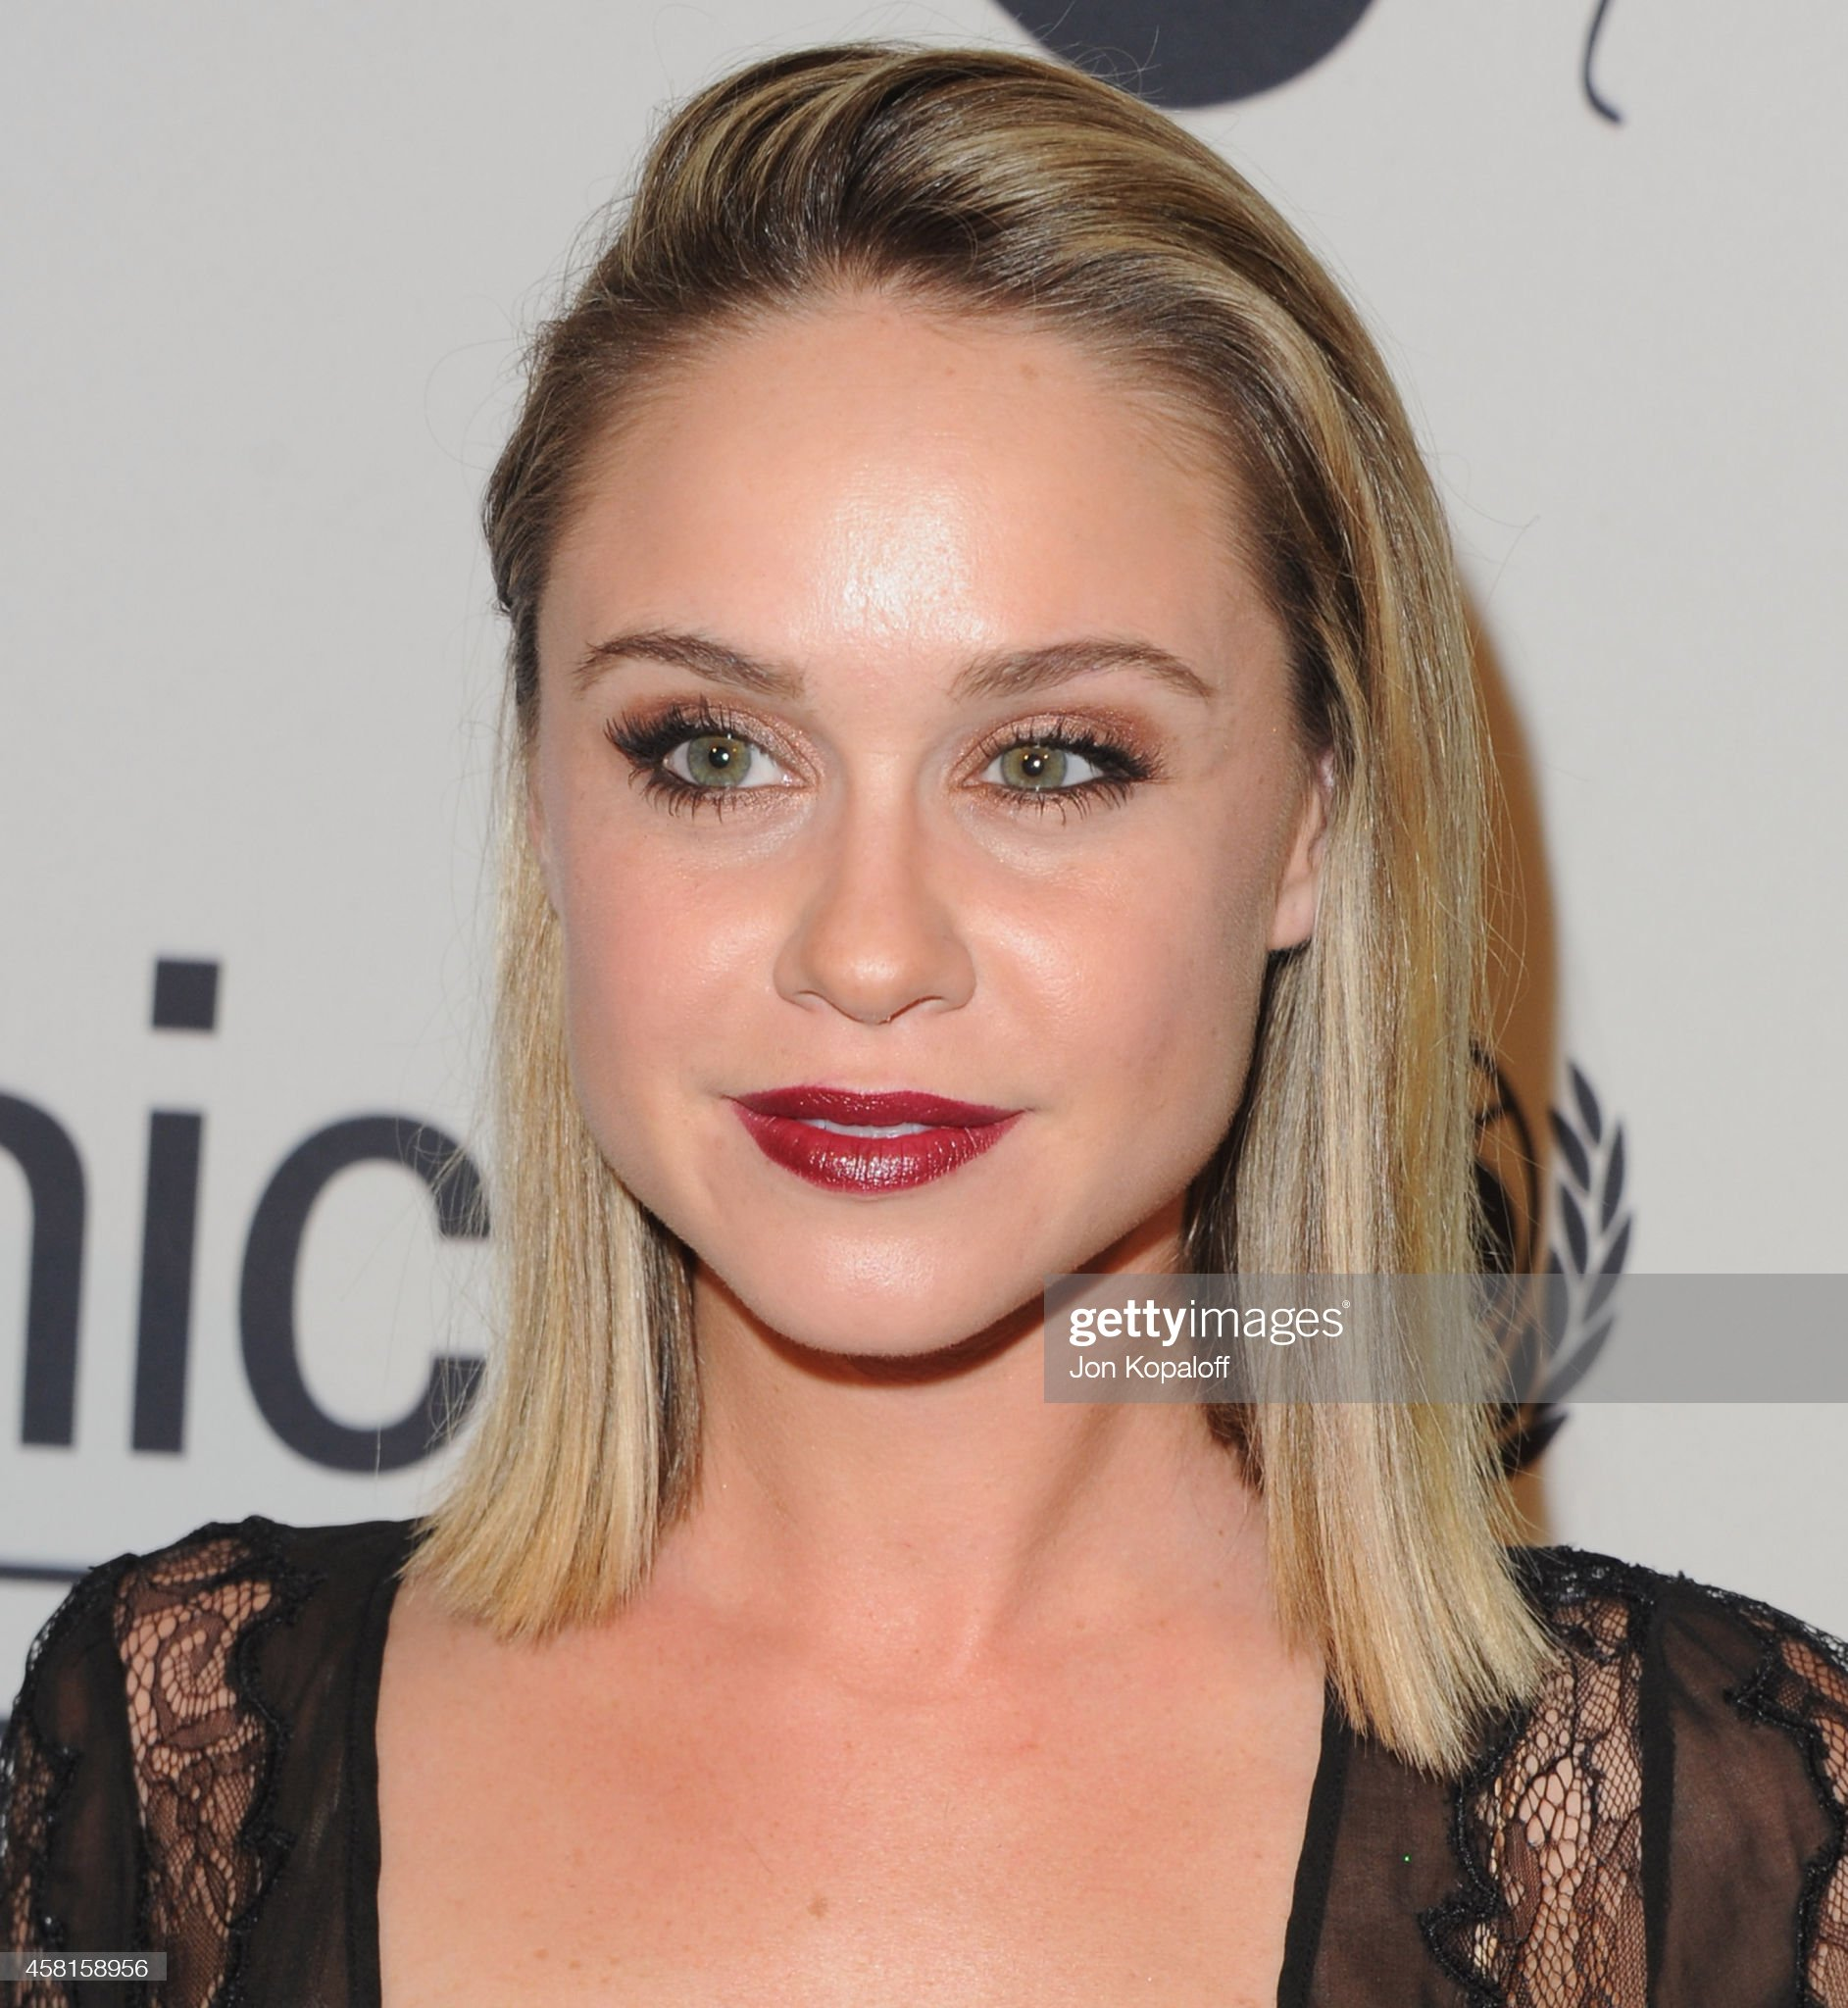 Ojos verdes - Famosas y famosos con los ojos de color VERDE Actress-becca-tobin-arrives-at-the-unicefs-next-generations-2nd-picture-id458158956?s=2048x2048